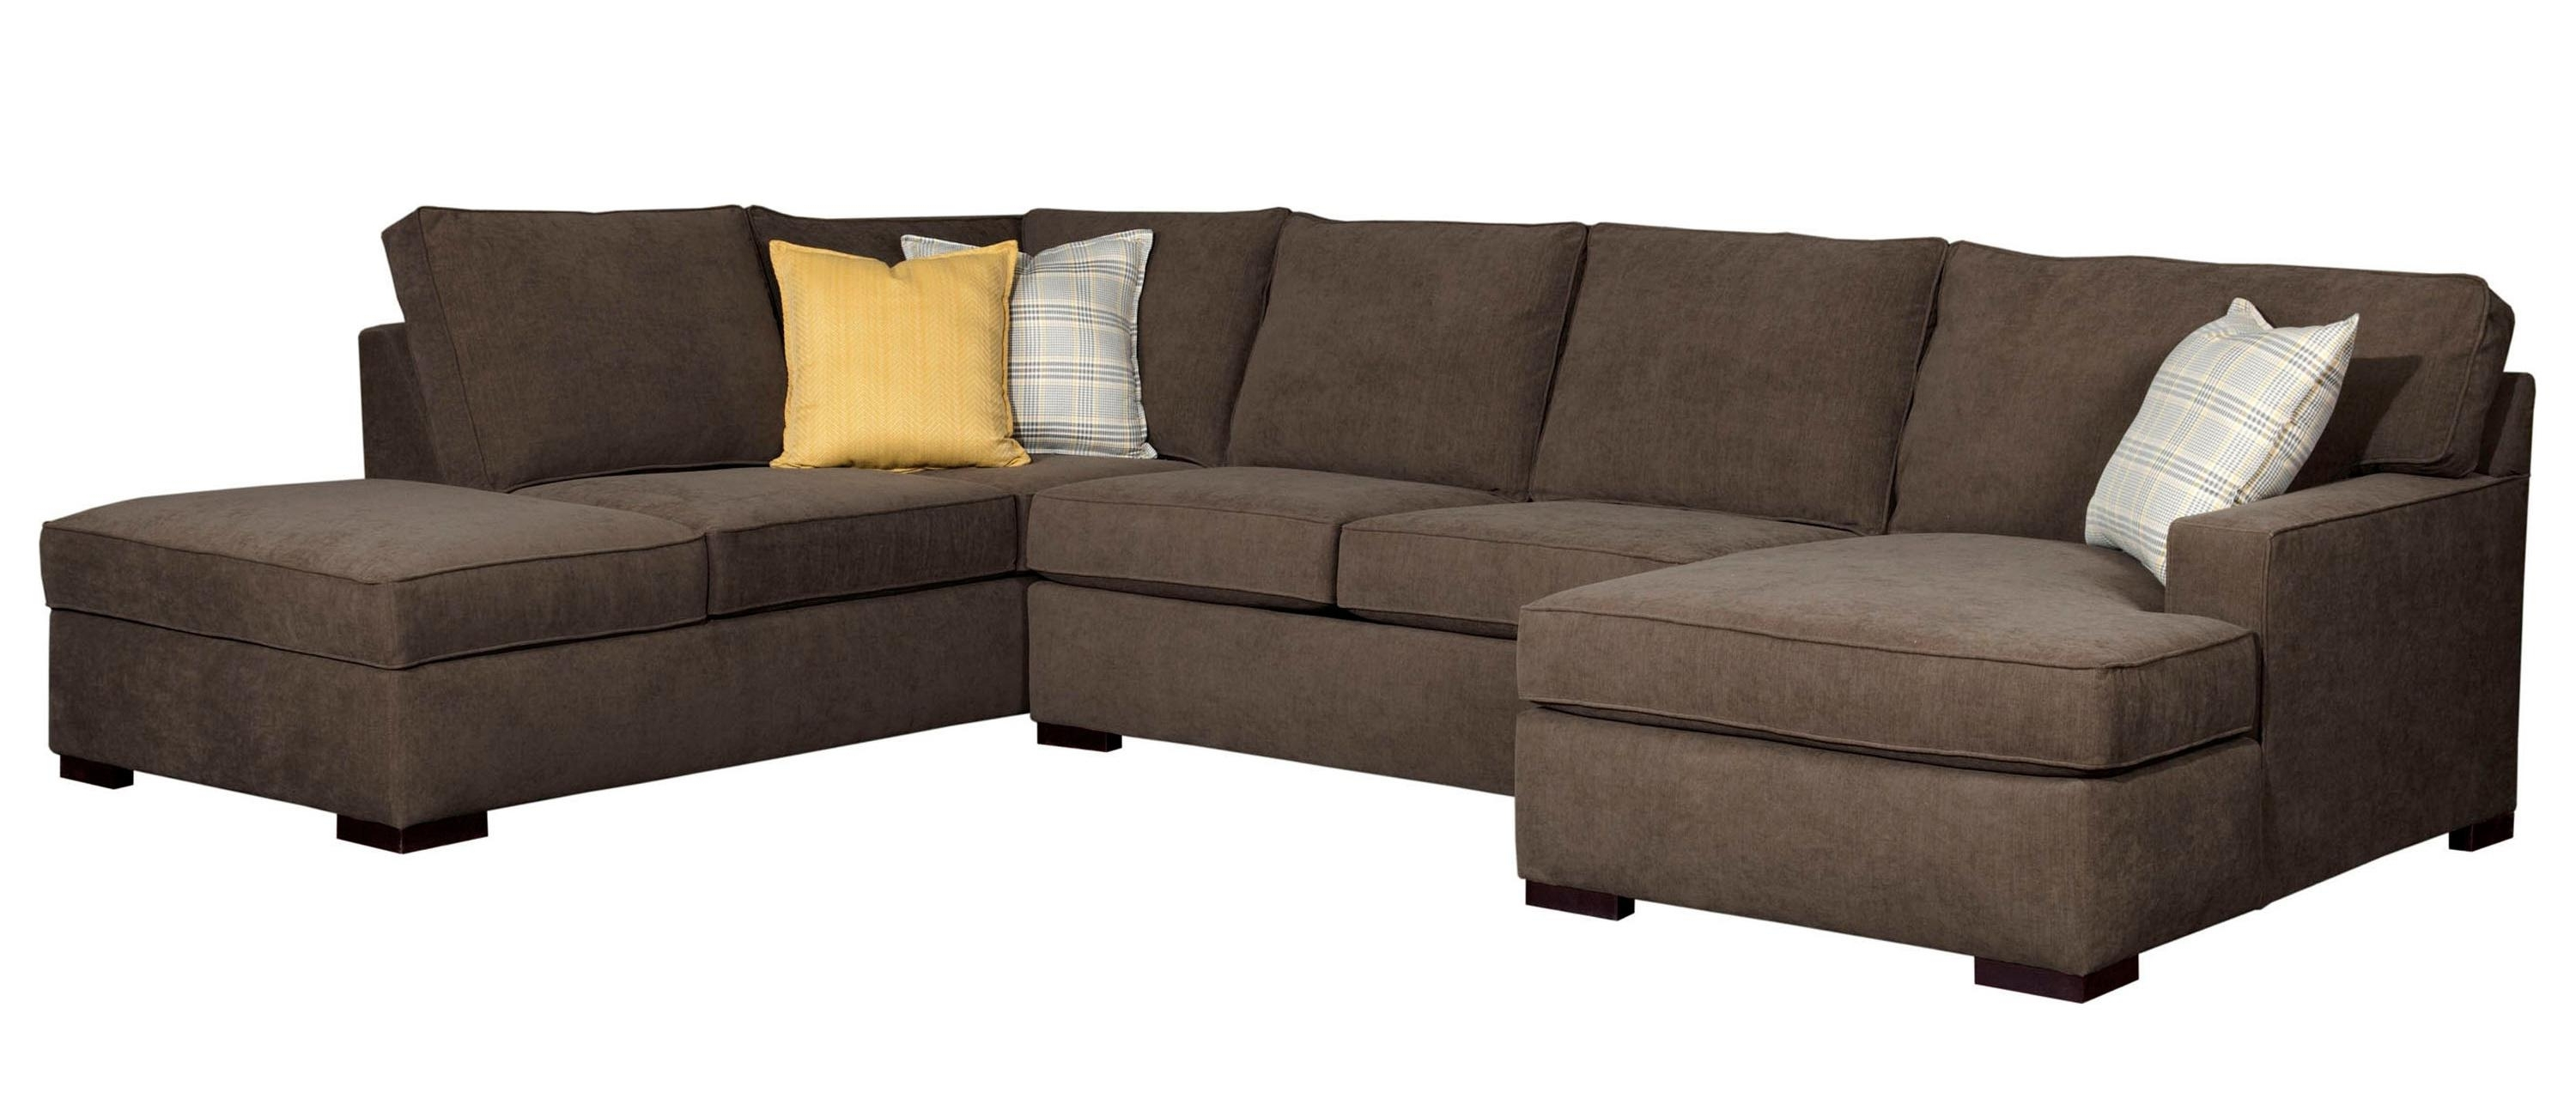 Popular Sectional Chaise Sofas Intended For Sectional Sofa Design: Sofa Sectional With Chaise Lounge Cheap (View 7 of 15)